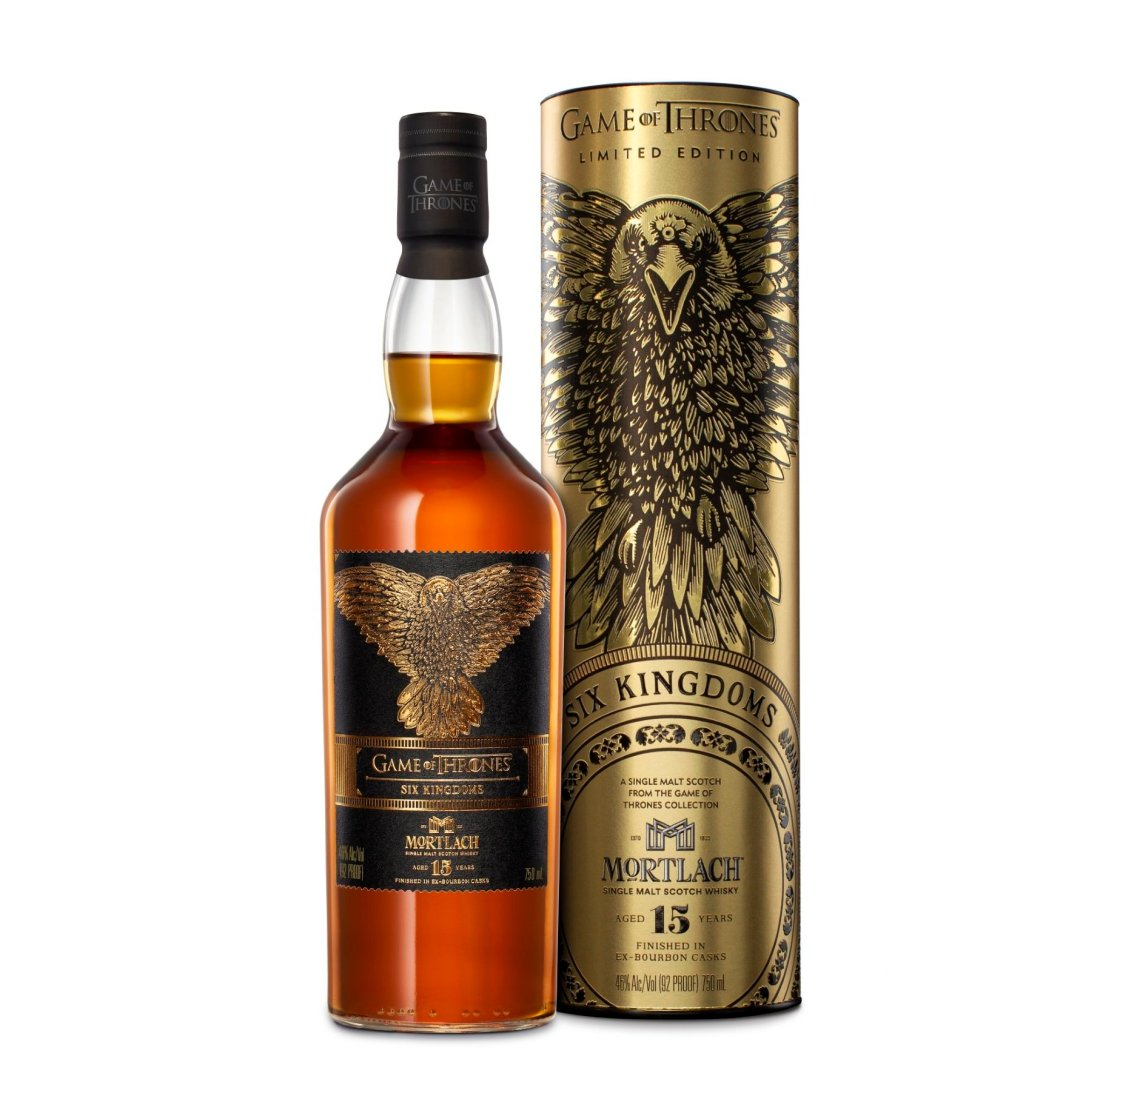 Mortlach Game of Thrones Six Kingdoms 15 Years Old